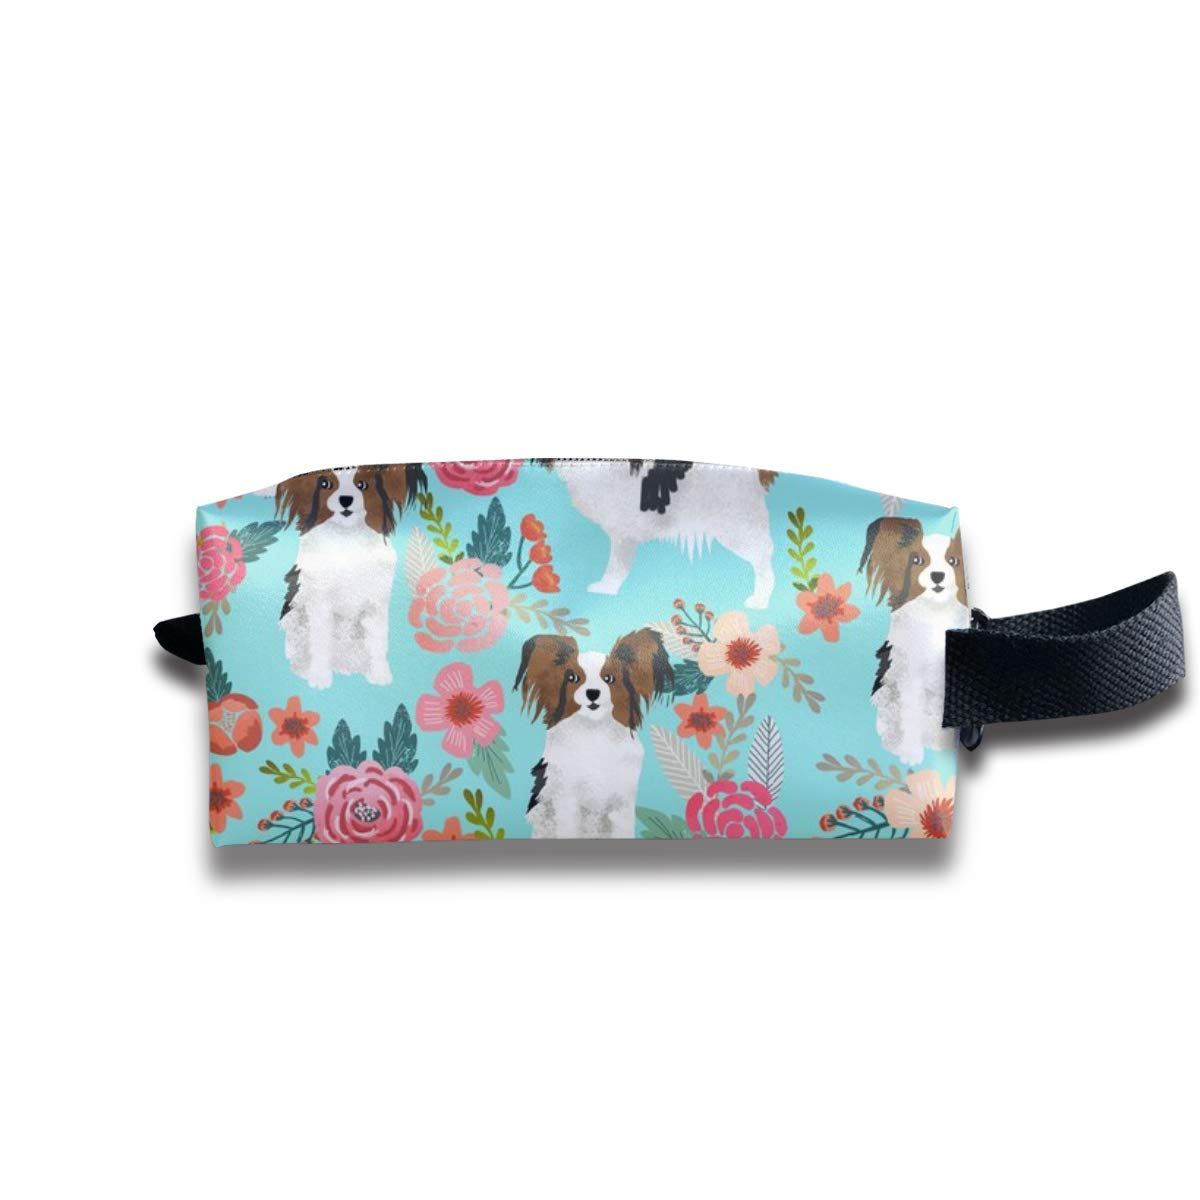 Papillons Florals Mint Cute Dog Fabric Toy Spaniels Dogs Cute Toy Breed Dog Florals Mint Best Pet Papillong Gift_486 Portable Travel Makeup Cosmetic Bags Organizer Multifunction Case Bags for Unisex